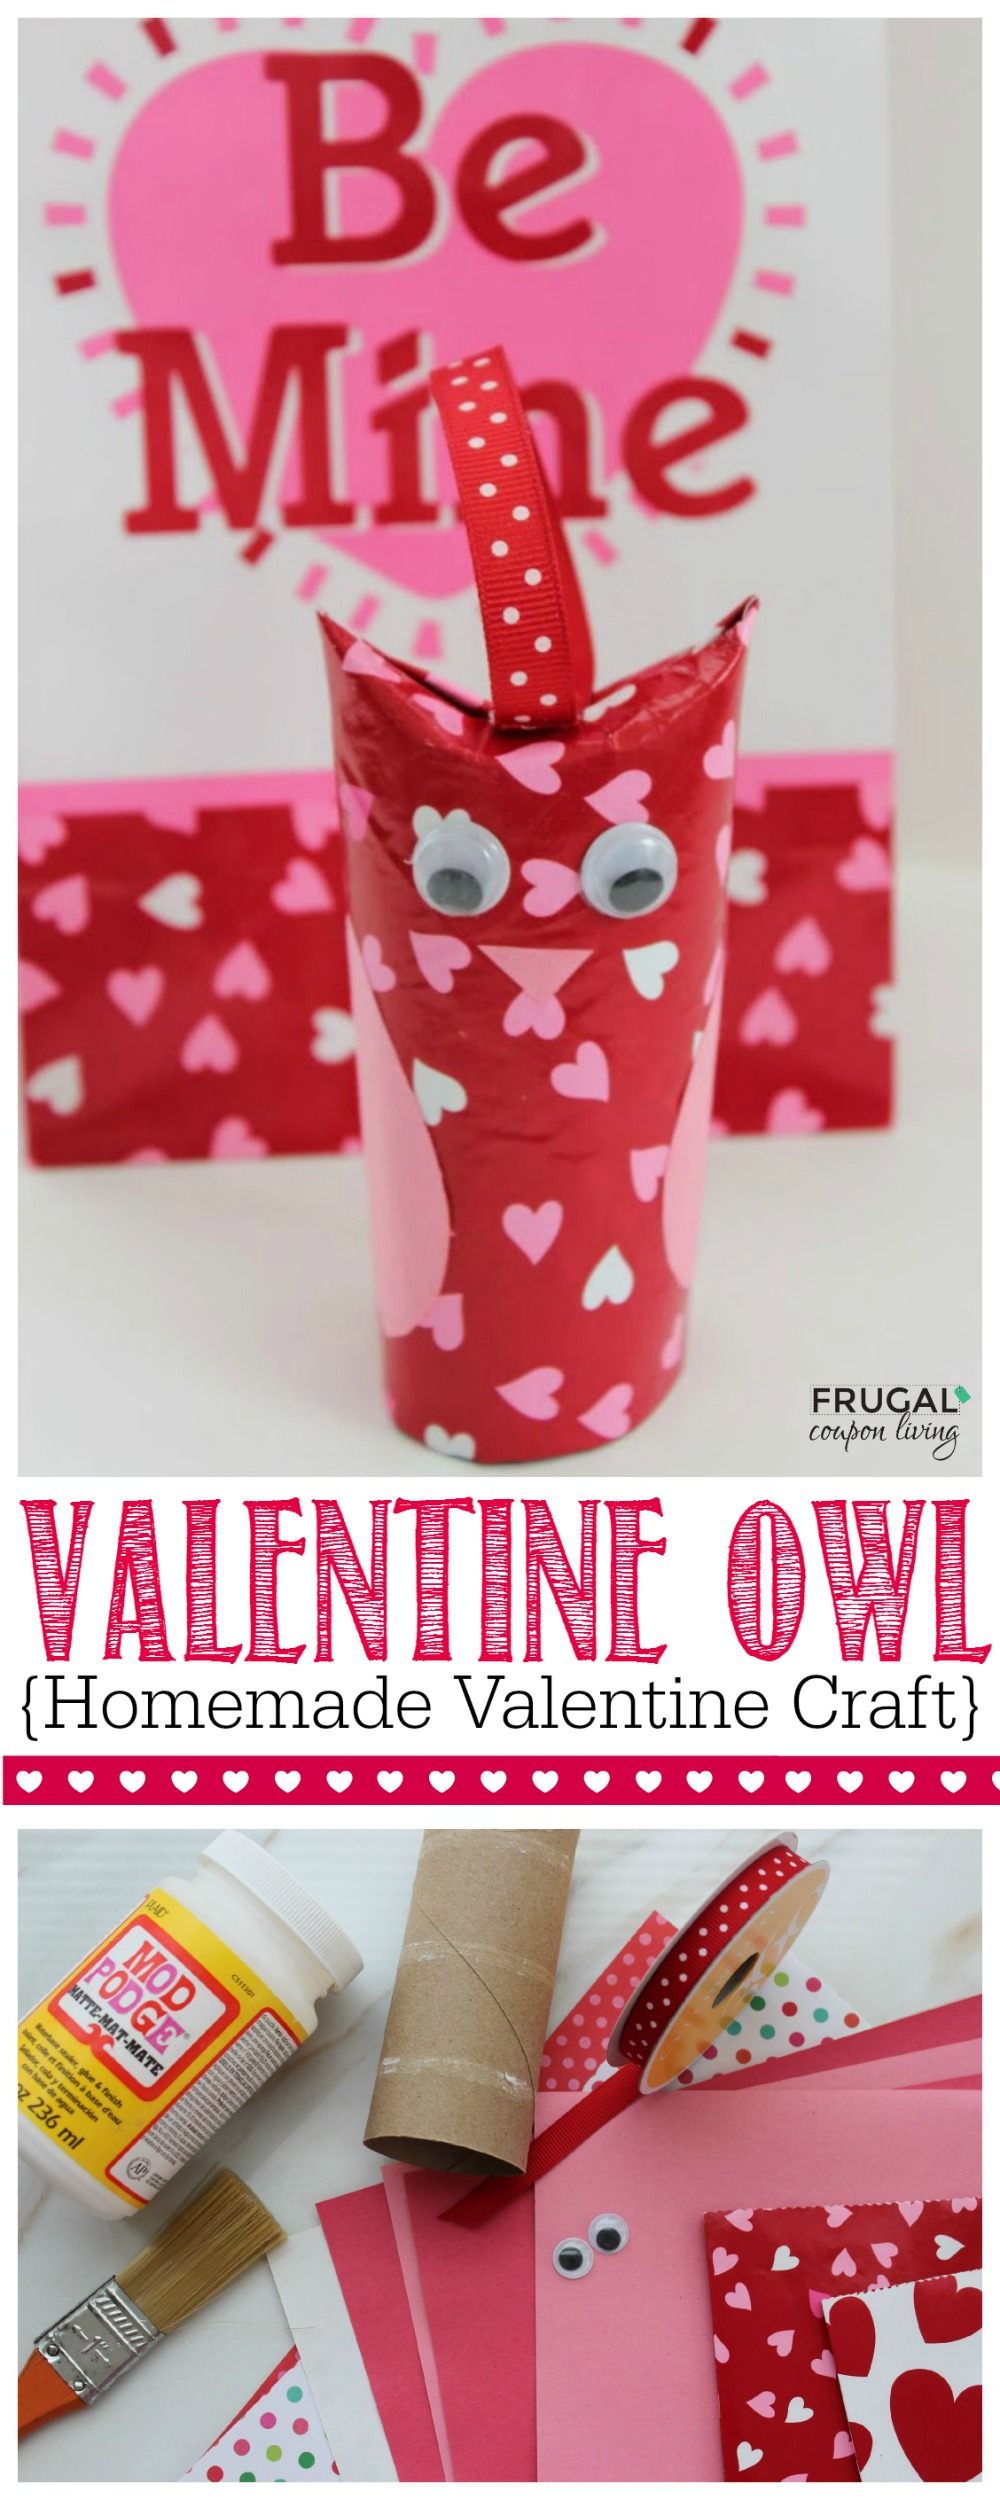 Valentine-Owl-Frugal-Coupon-Living